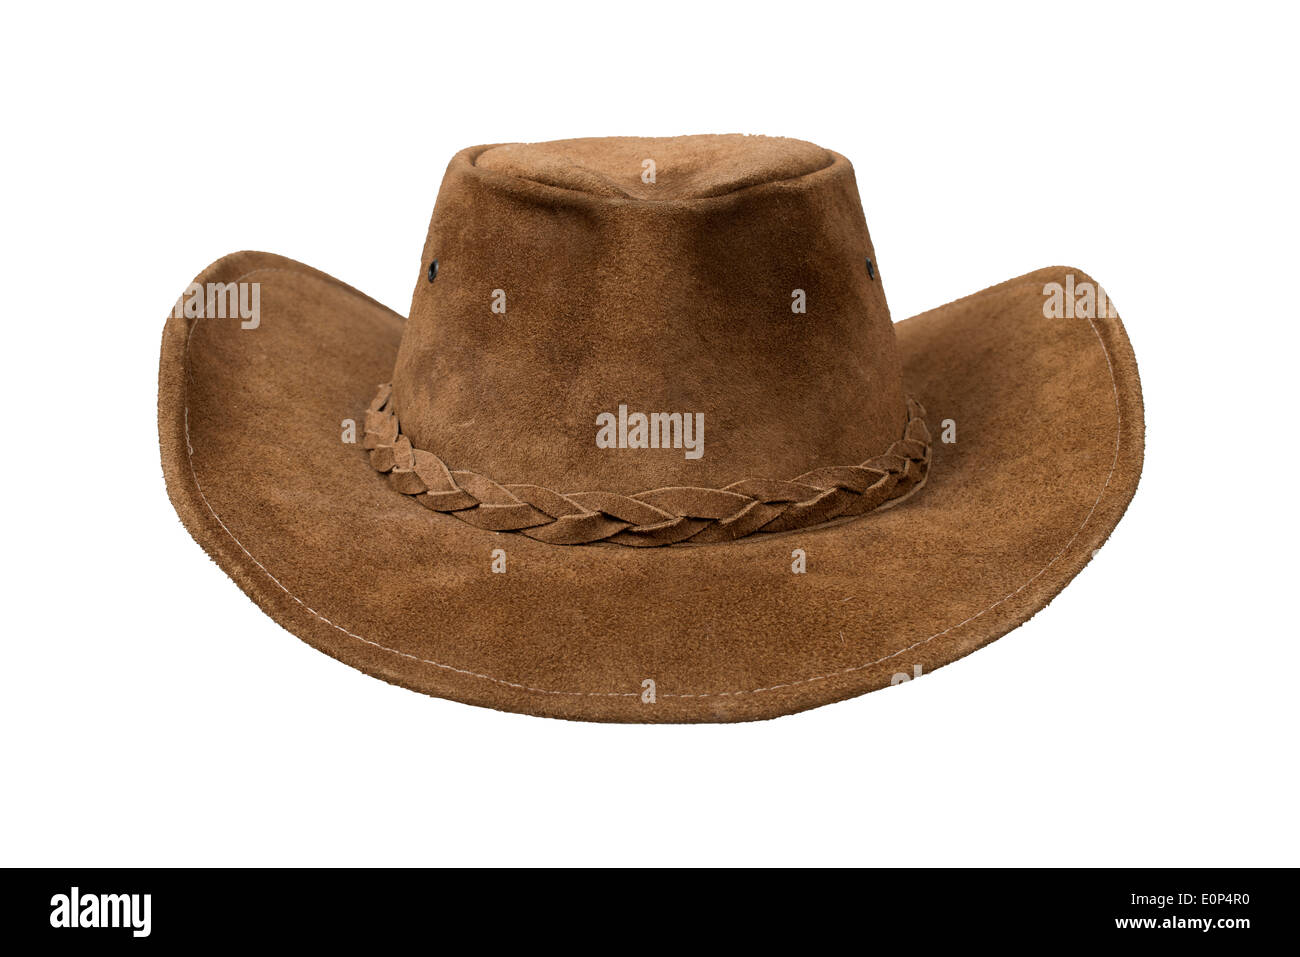 ad33bc87817 Brown cowboy leather hat isolated over white with clipping path - Stock  Image